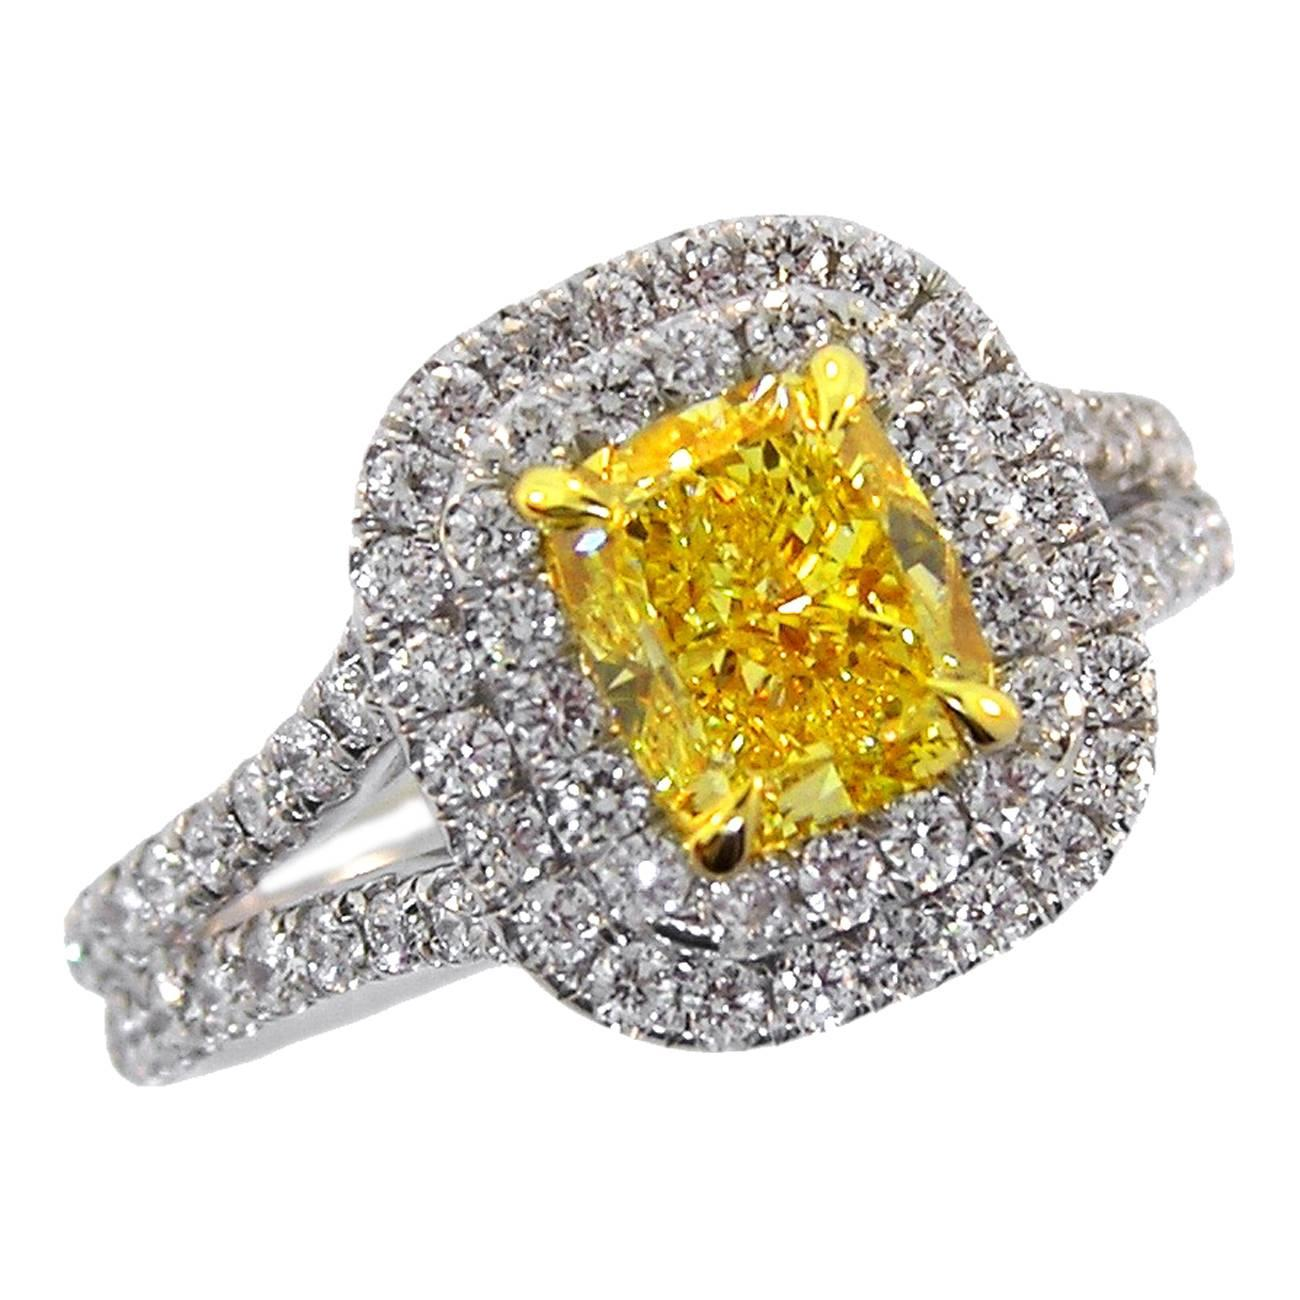 diamond silver canary ca jewelry asscher dt cz yellow bling cut ring engagement simulated sterling